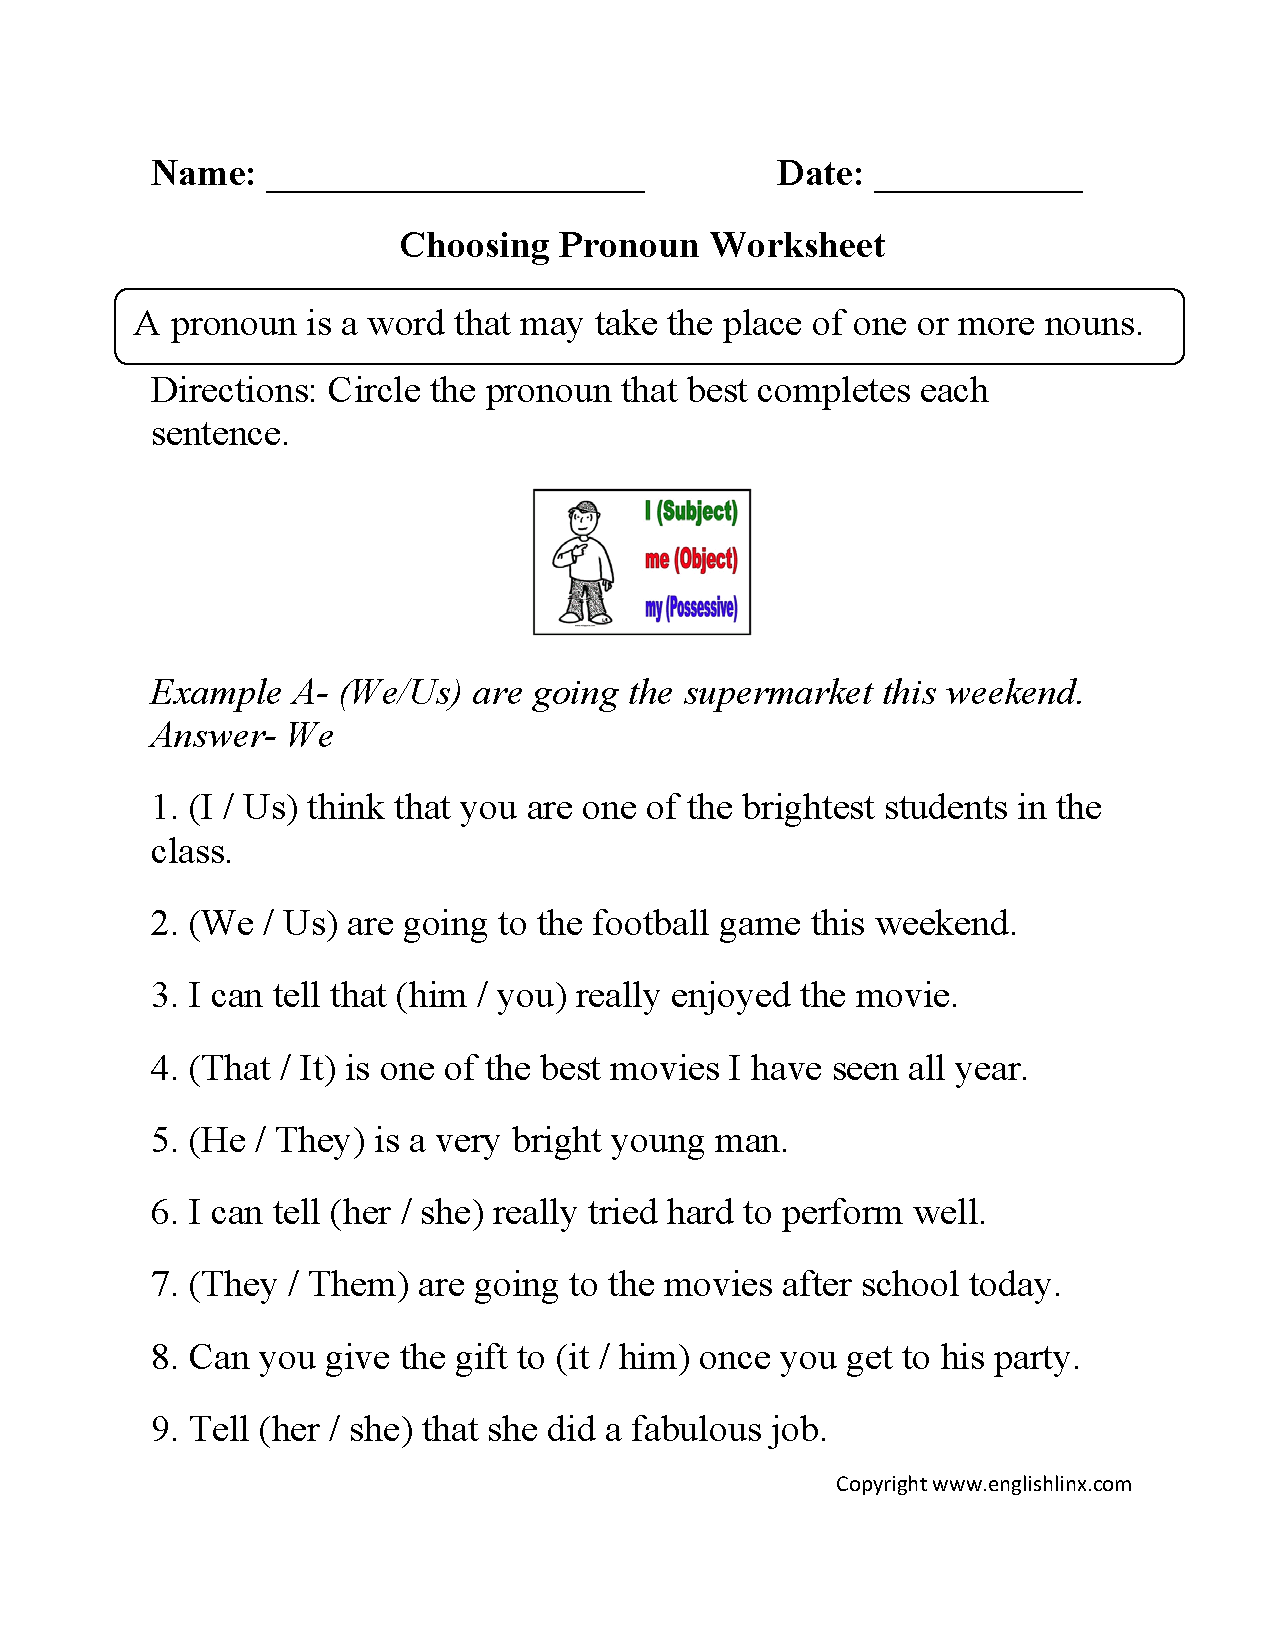 worksheet Elementary Grammar Worksheets grammar worksheets parts of speech pronoun worksheets